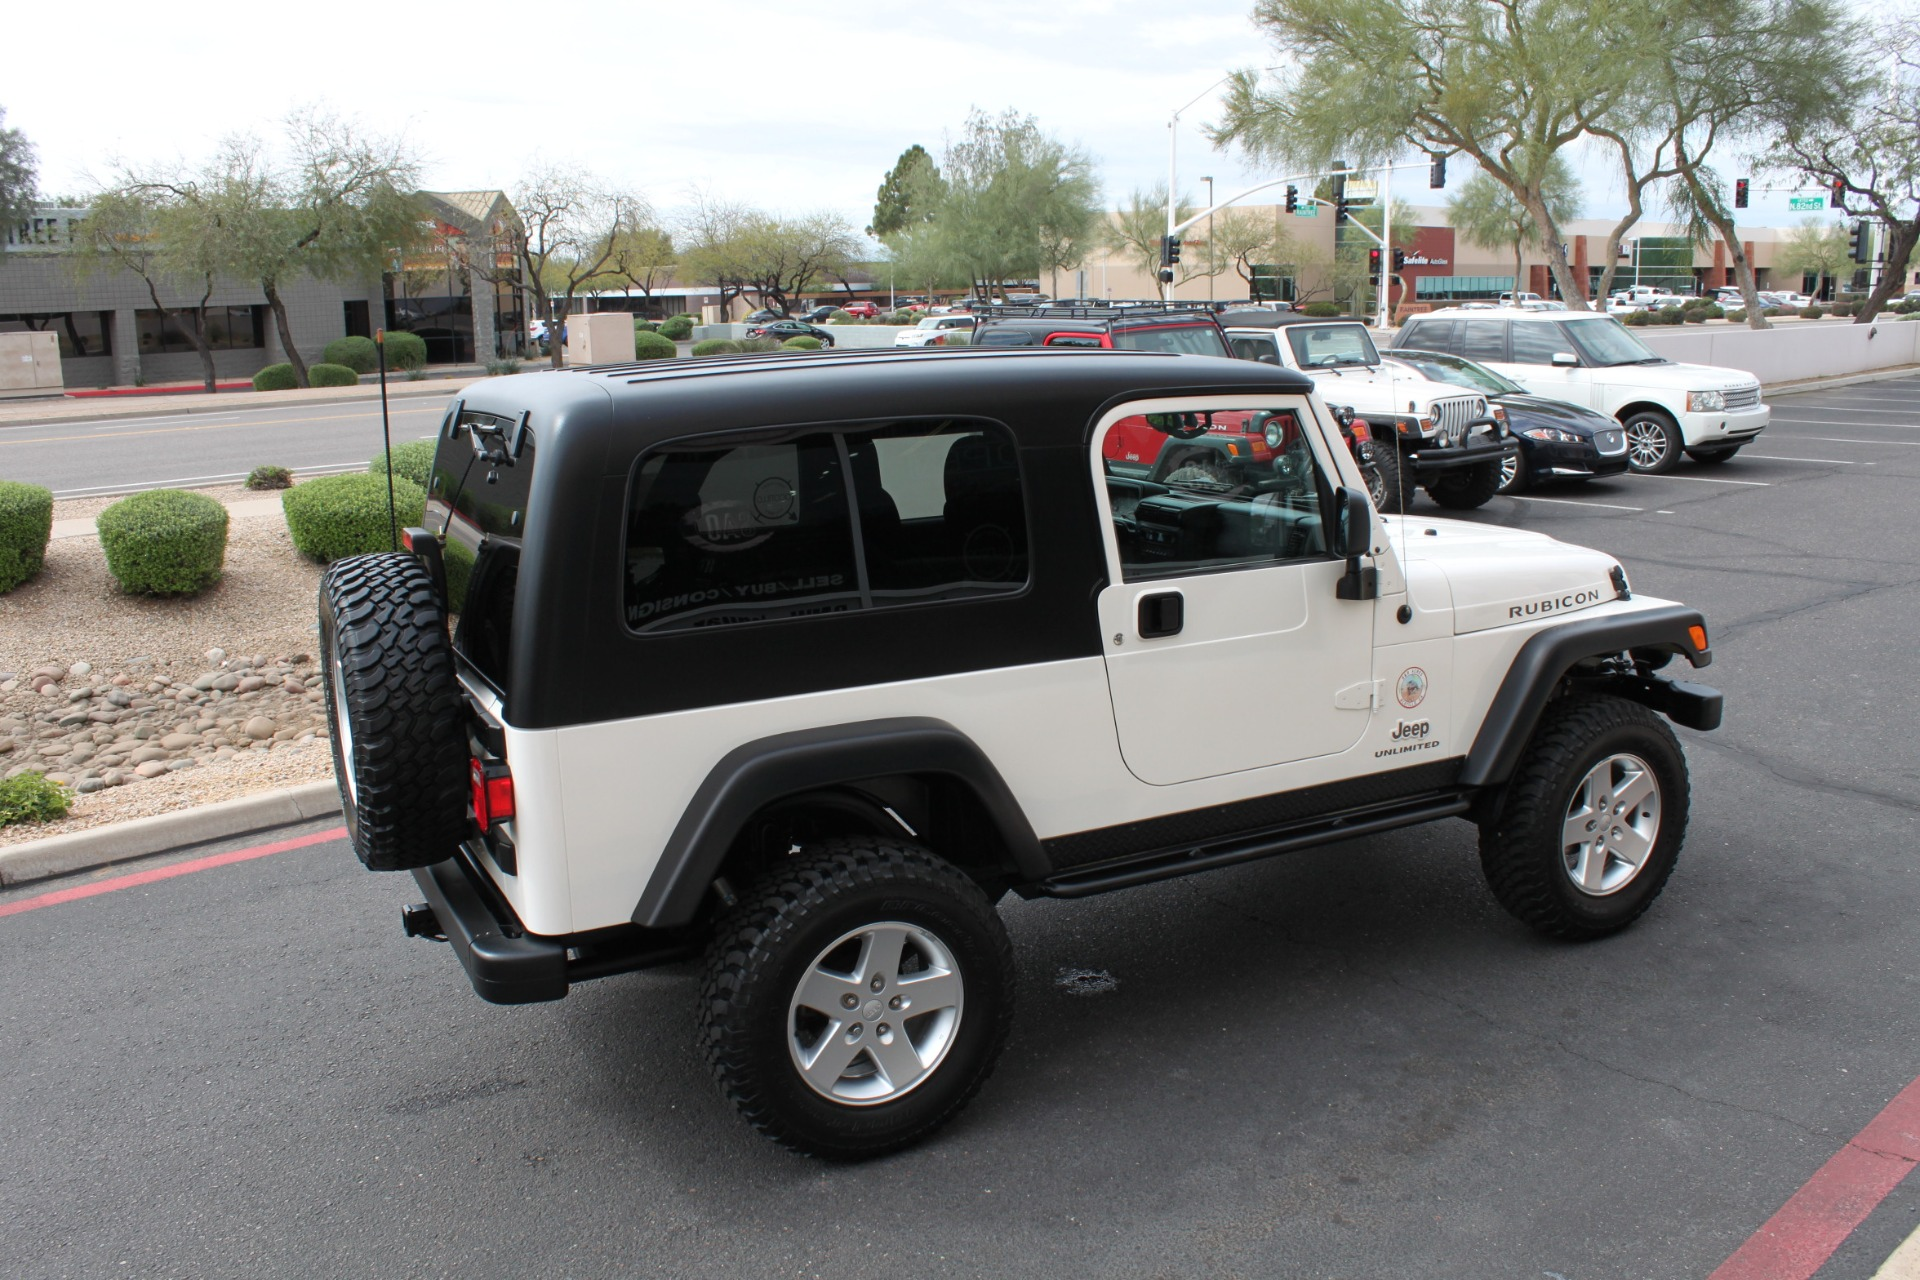 Used-2006-Jeep-Wrangler-Unlimited-Rubicon-LWB-LS400